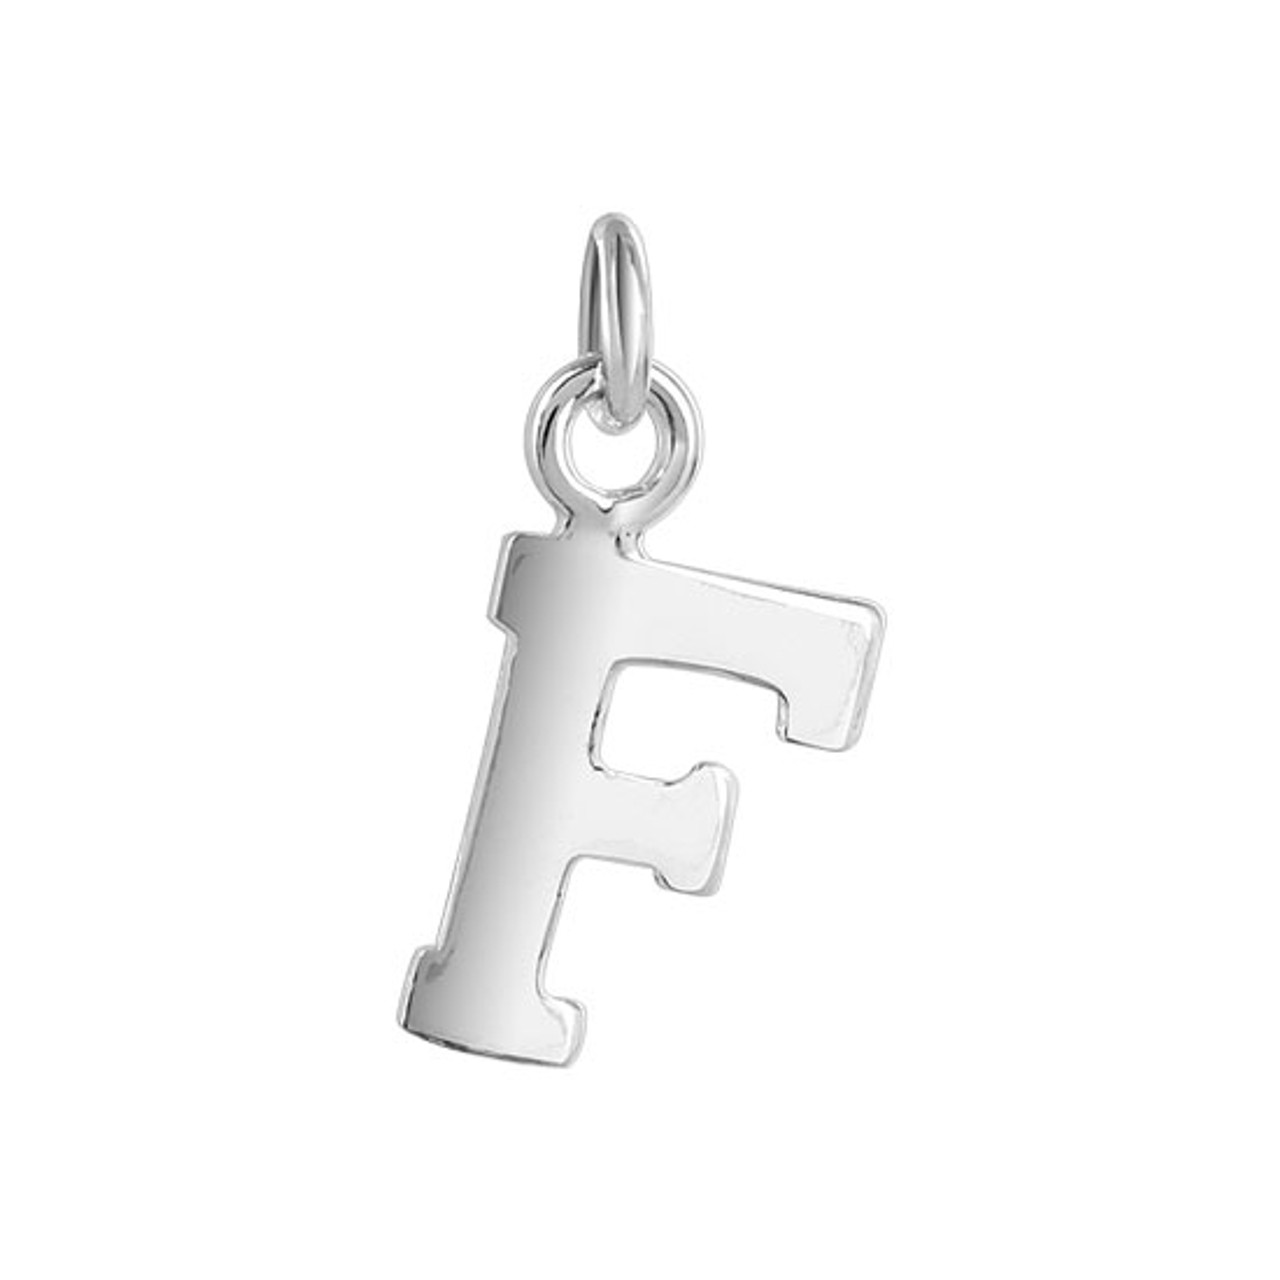 10mm x 8mm F Initial Sterling Silver Pendant Charm